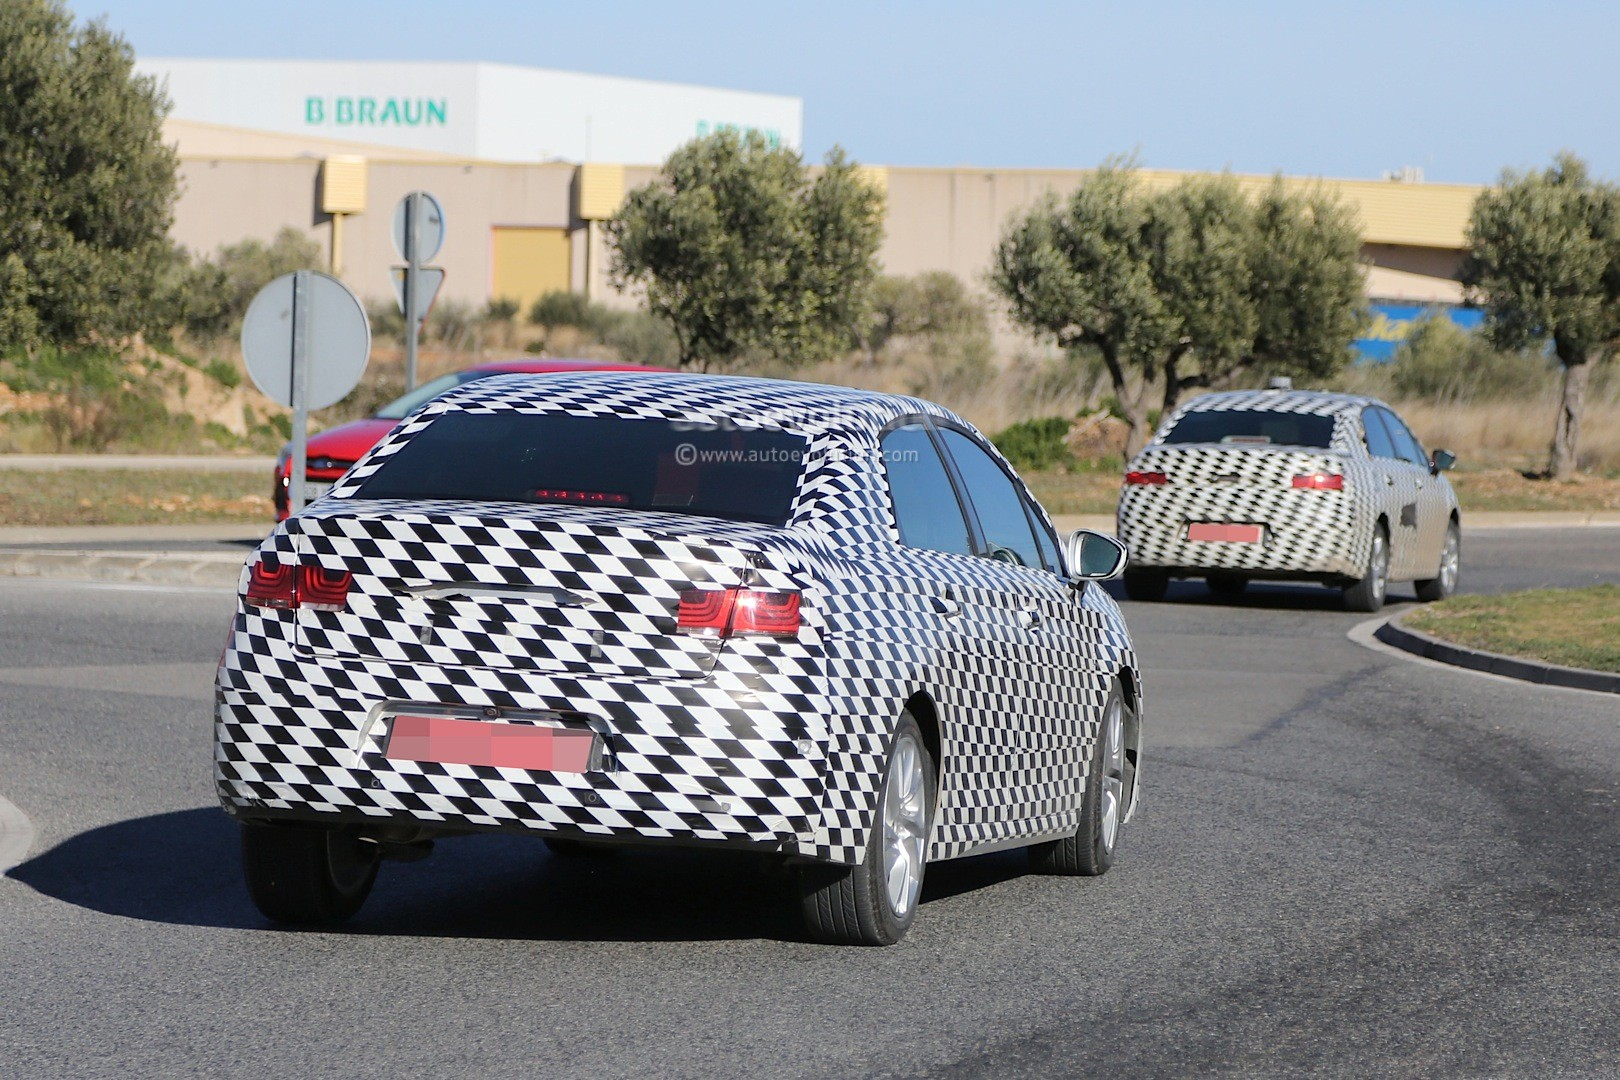 2015 - [Citroën] C4 C-Quatre - Page 2 Mystery-citroen-compact-sedan-spied-testing-in-spain-could-be-the-new-c4-lunge_10